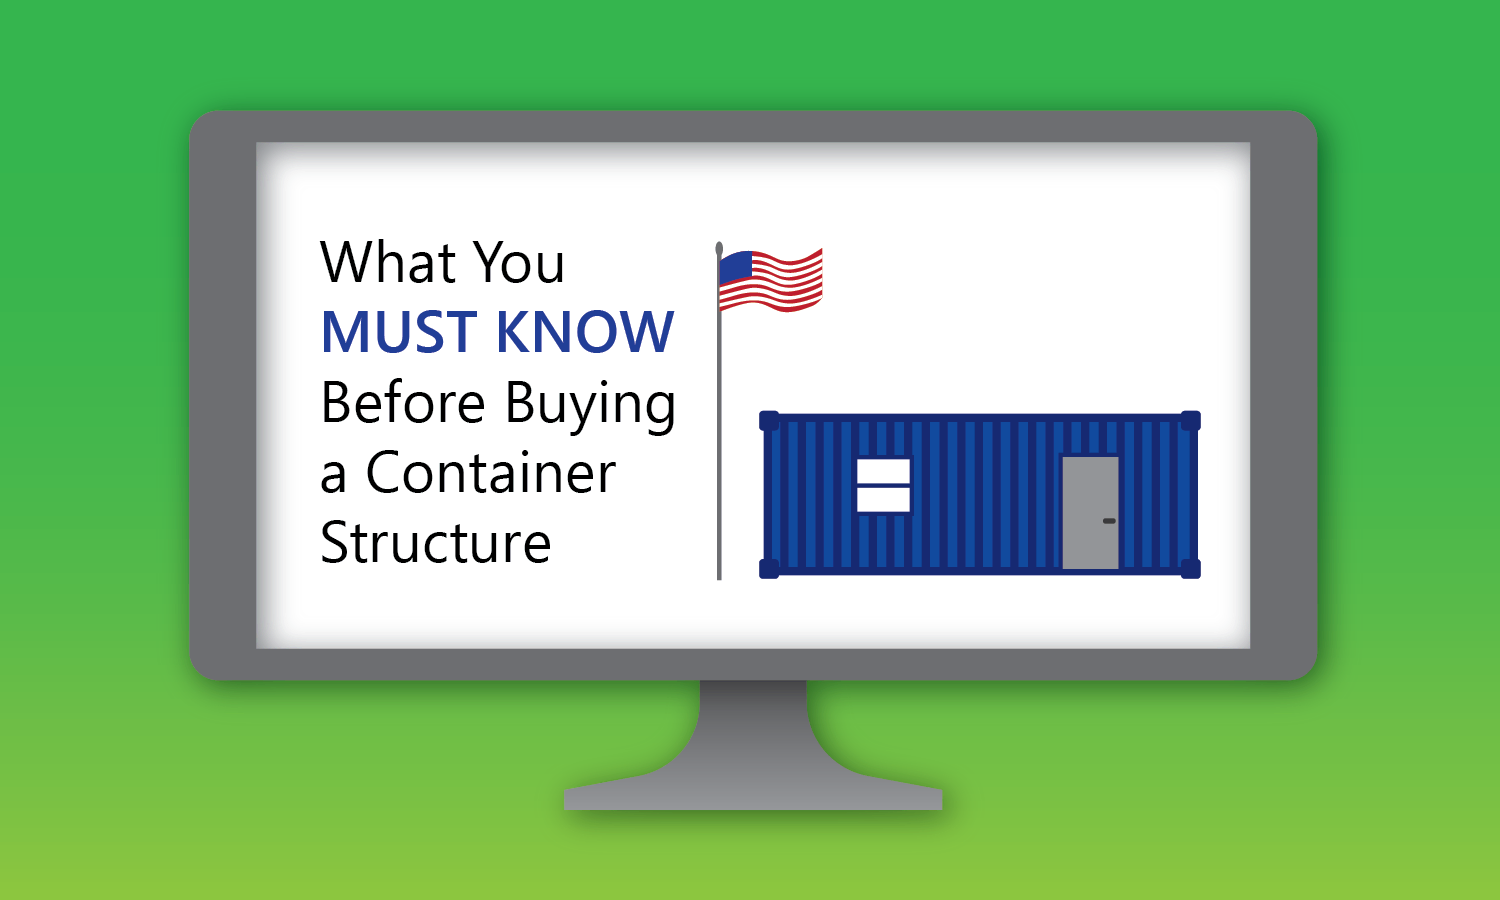 Webinar for What You MUST KNOW Before Buying a Container Structure